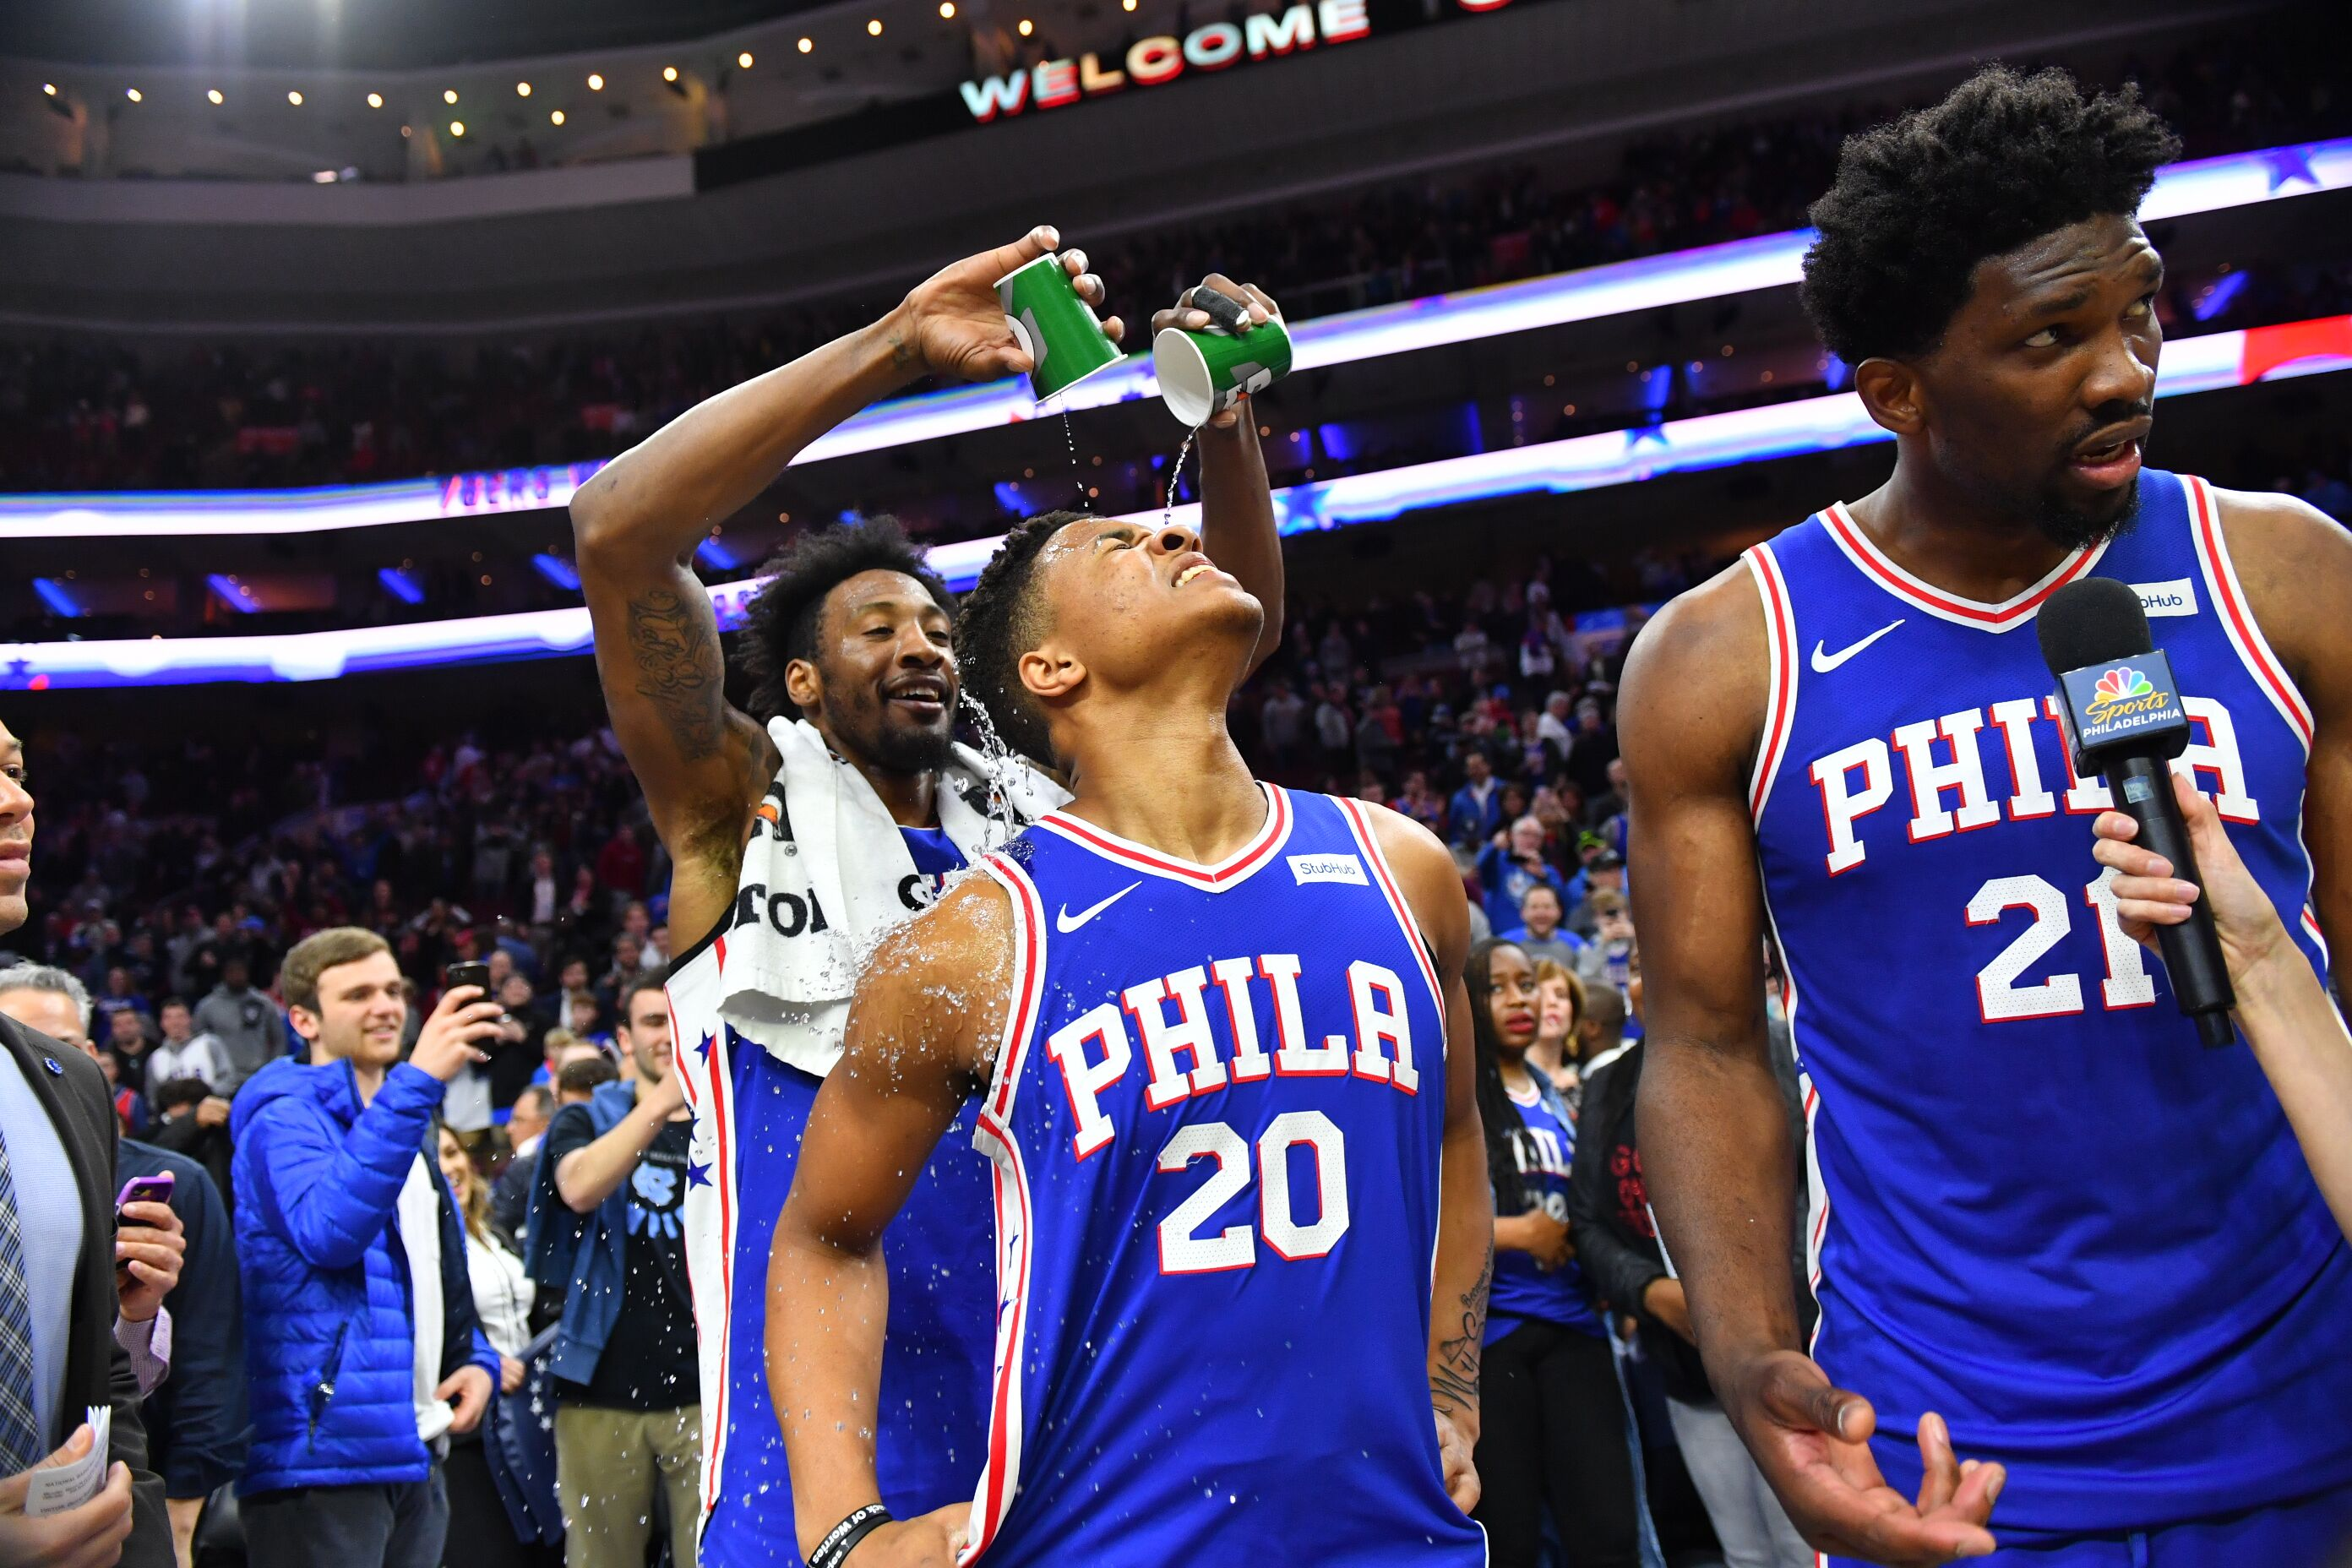 76ers: Philadelphia 76ers Likely 2018 NBA Playoff Opponents